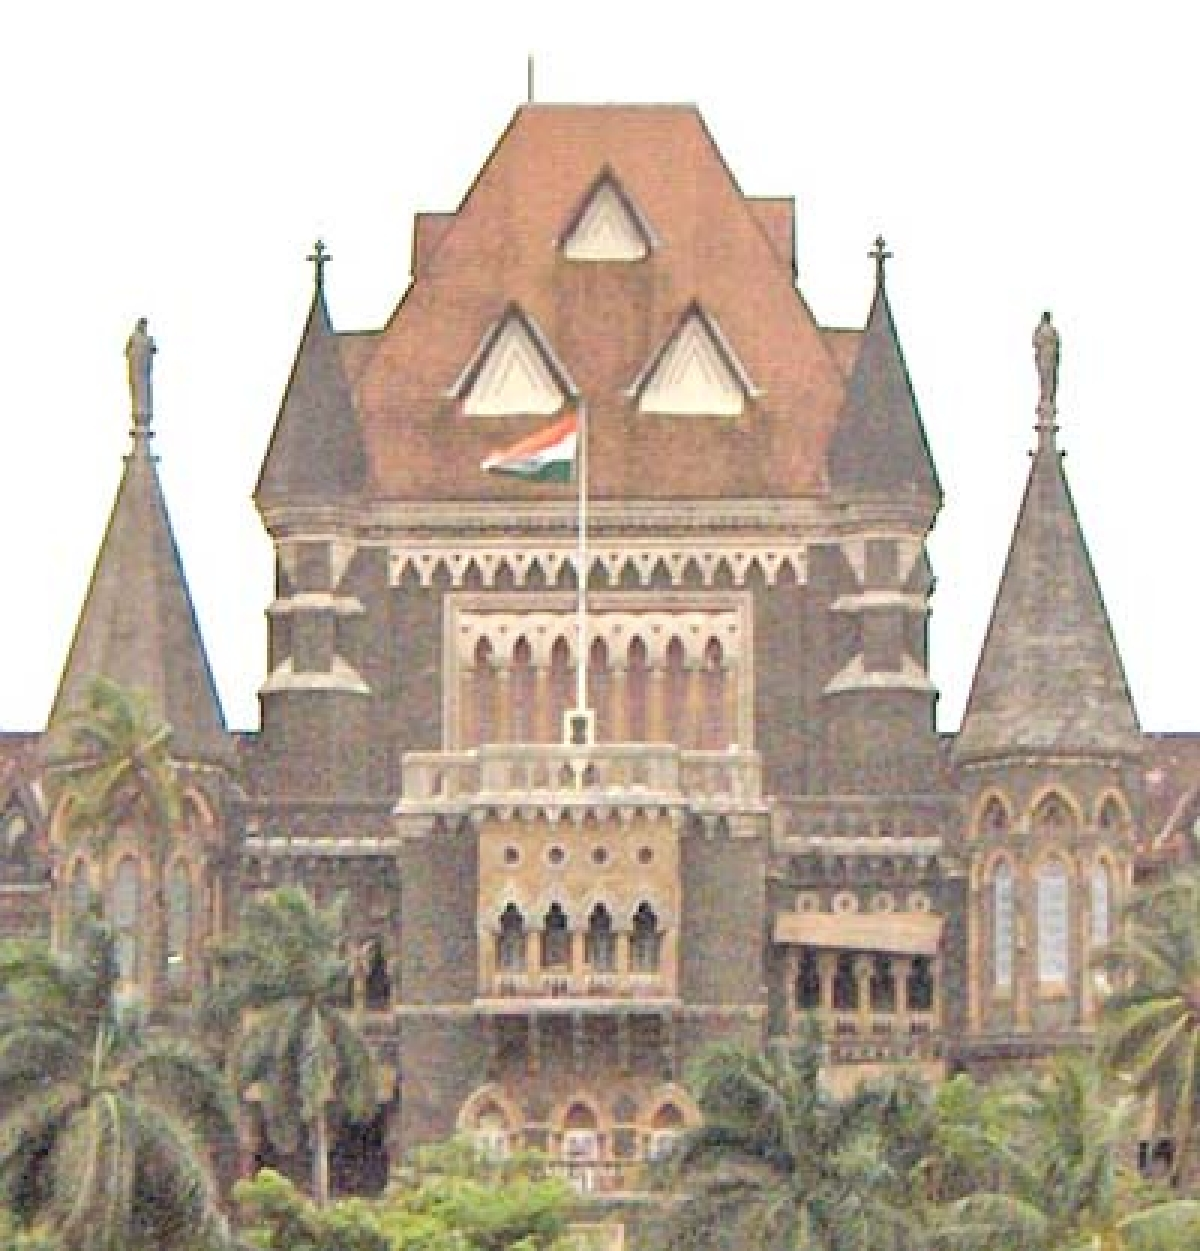 Court observations will affect right to profess religion: BJP to HC